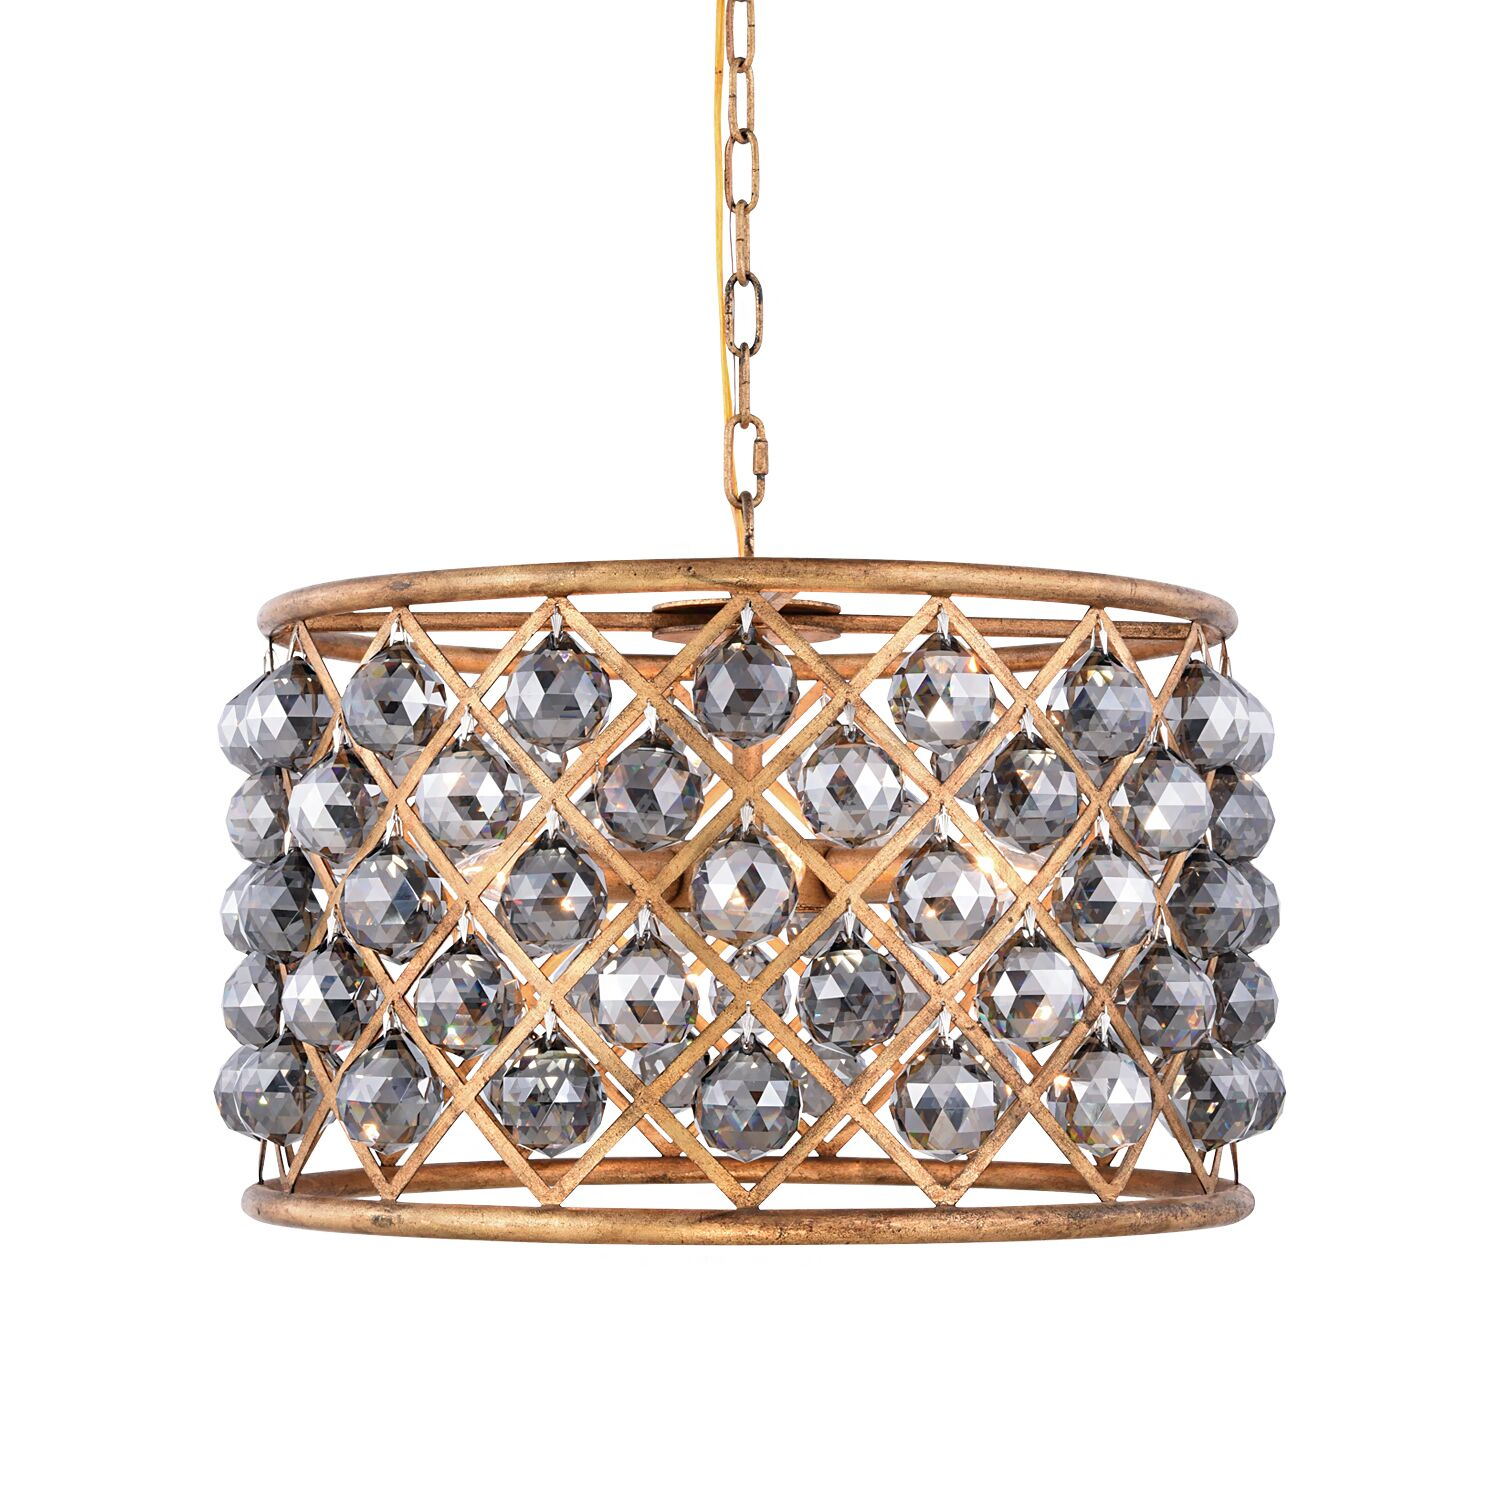 Lulsgate 6-Light Chandelier Finish: Gold, Bulb Type: Incandescent, Shade Color: Smoke